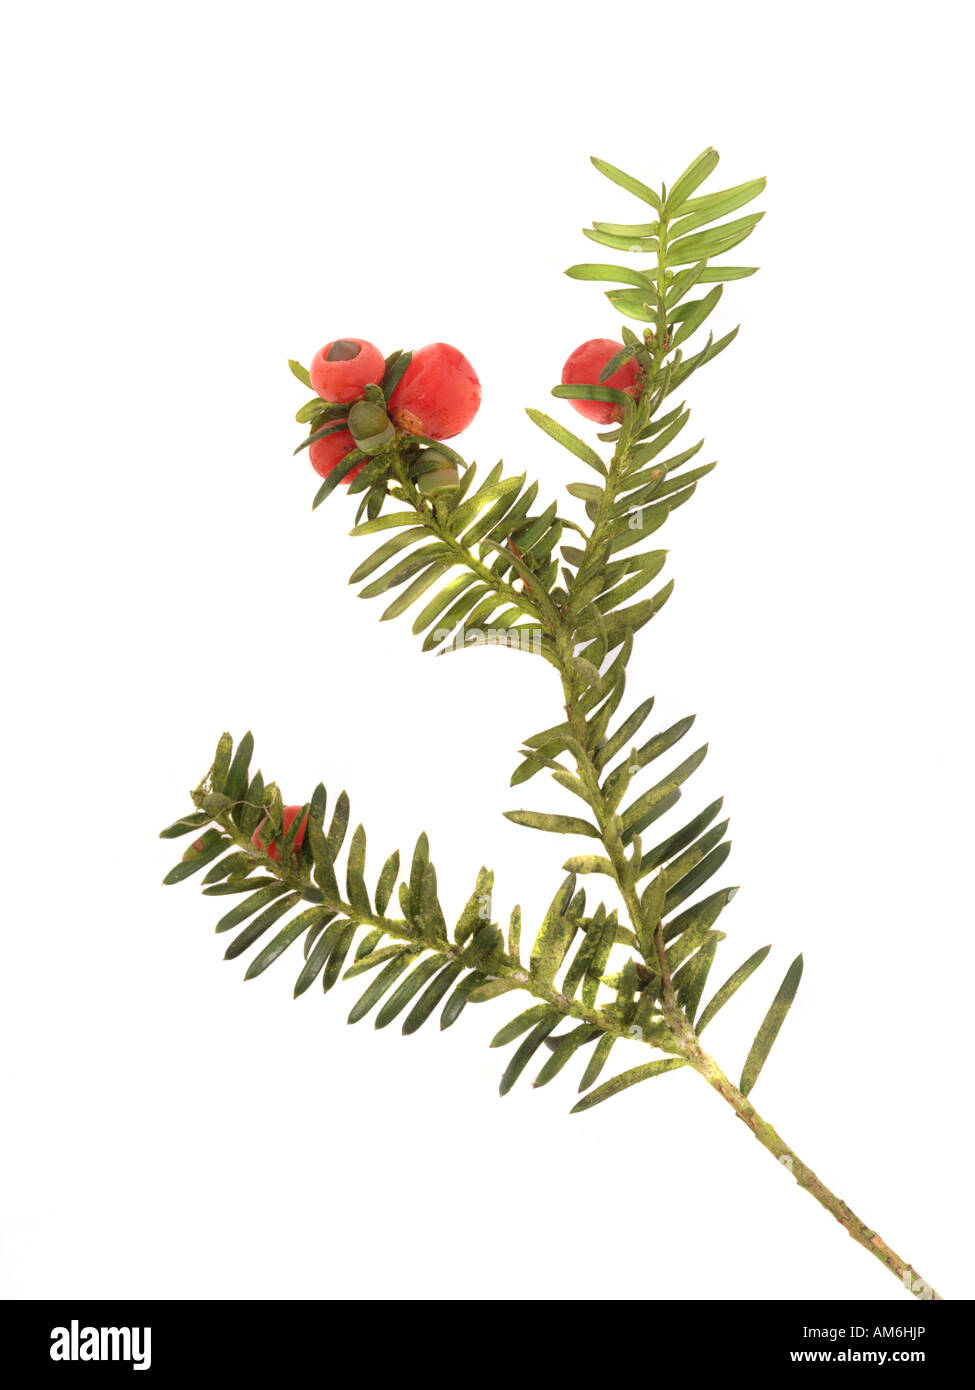 Yew Berries and leaves cut out - Stock Image